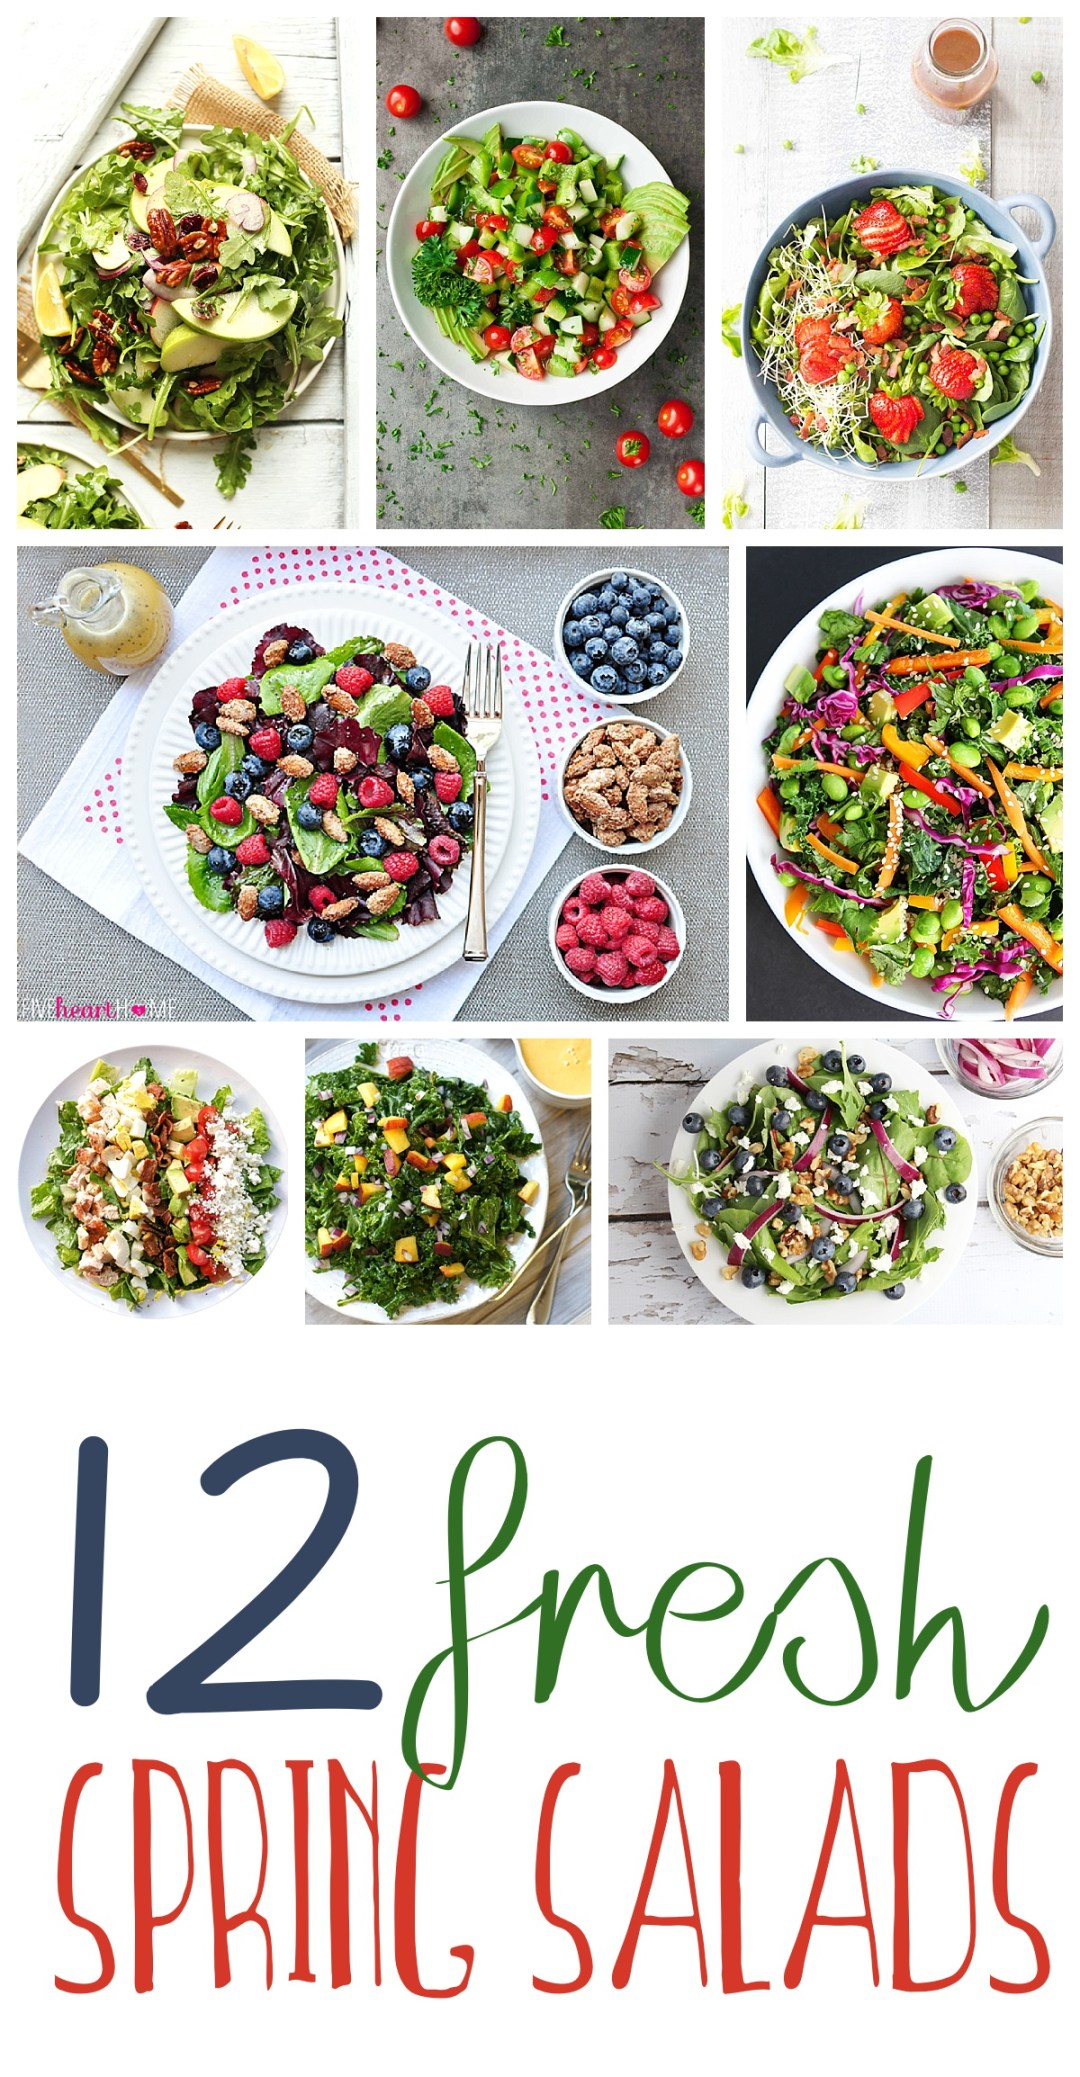 Spring Salads | Salads | Salads Roundup | Healthy Eating | Clean Eating | The Six Clever Sisters blog has such a delicious collection of spring salad recipes! From blueberries to mint to peaches to arugula -- these salads have a lot of flavor!